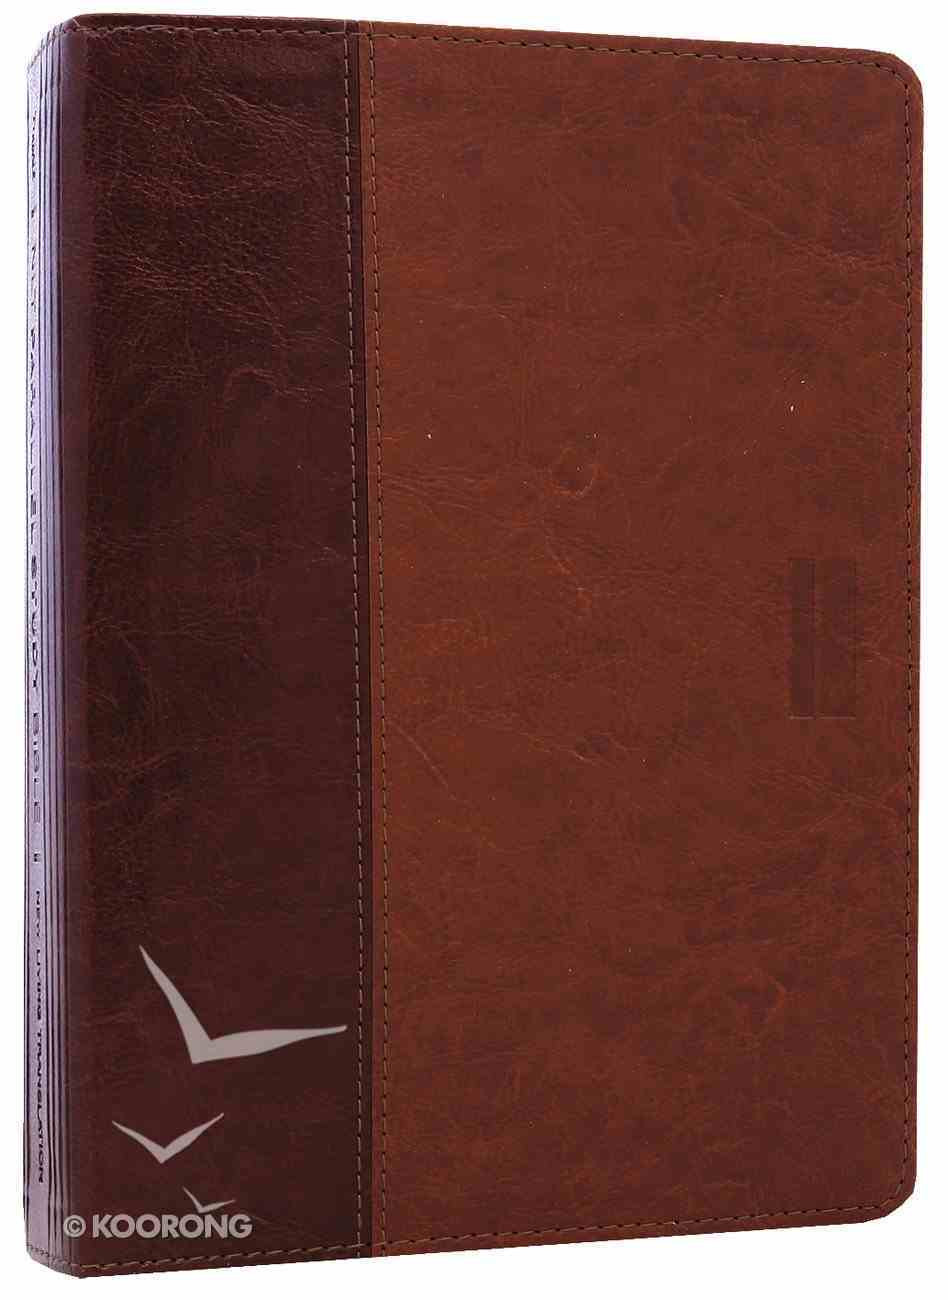 NLT Parallel Study Bible Brown/Tan (Black Letter Edition) Imitation Leather